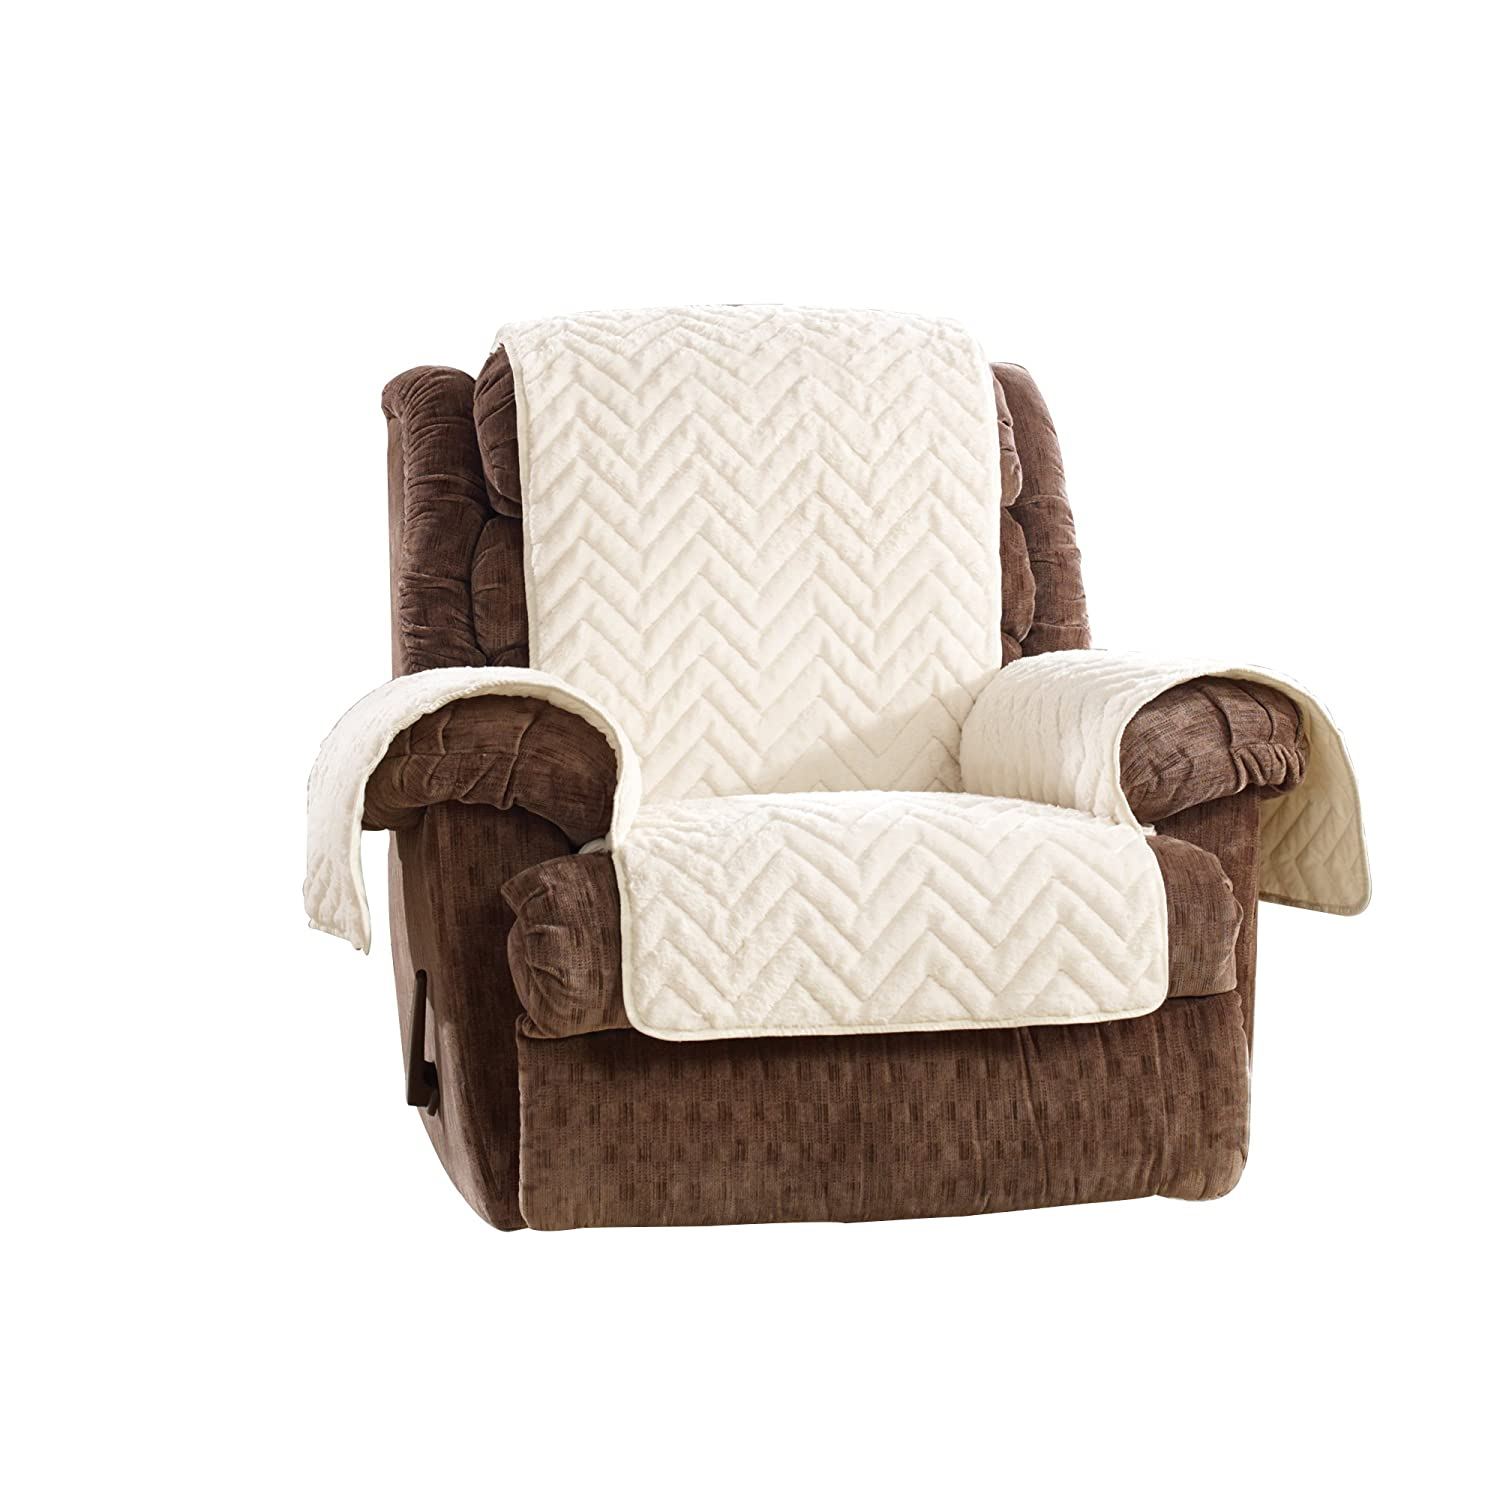 SureFit Quilted Faux Fur Navy Recliner Furniture Cover Sure Fit SF44889